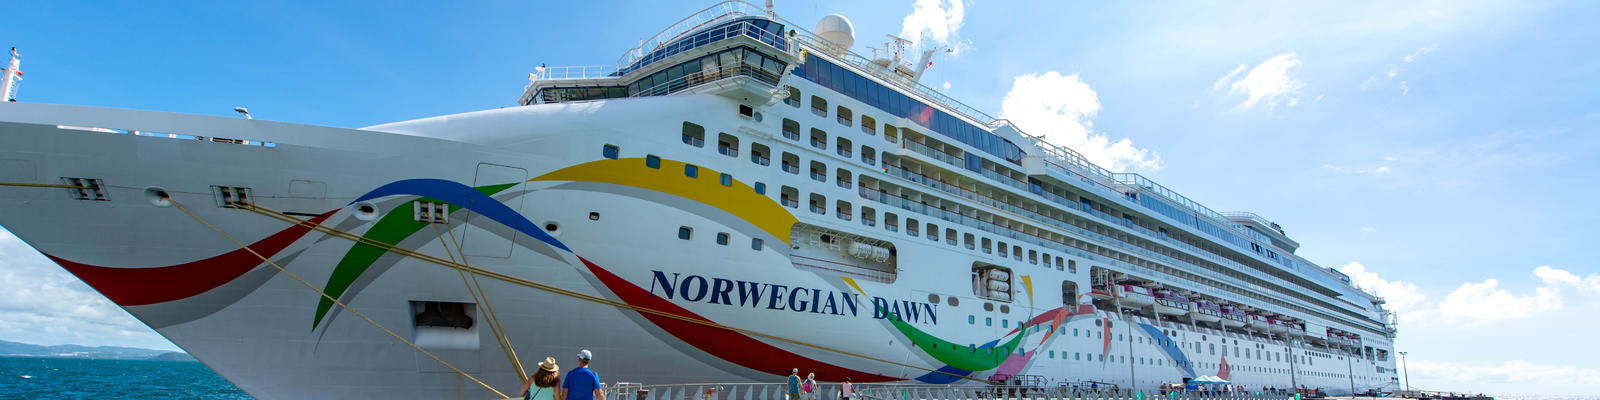 Norwegian Dawn Cruise Ship Review Photos Departure Ports On - Cruise ship dawn